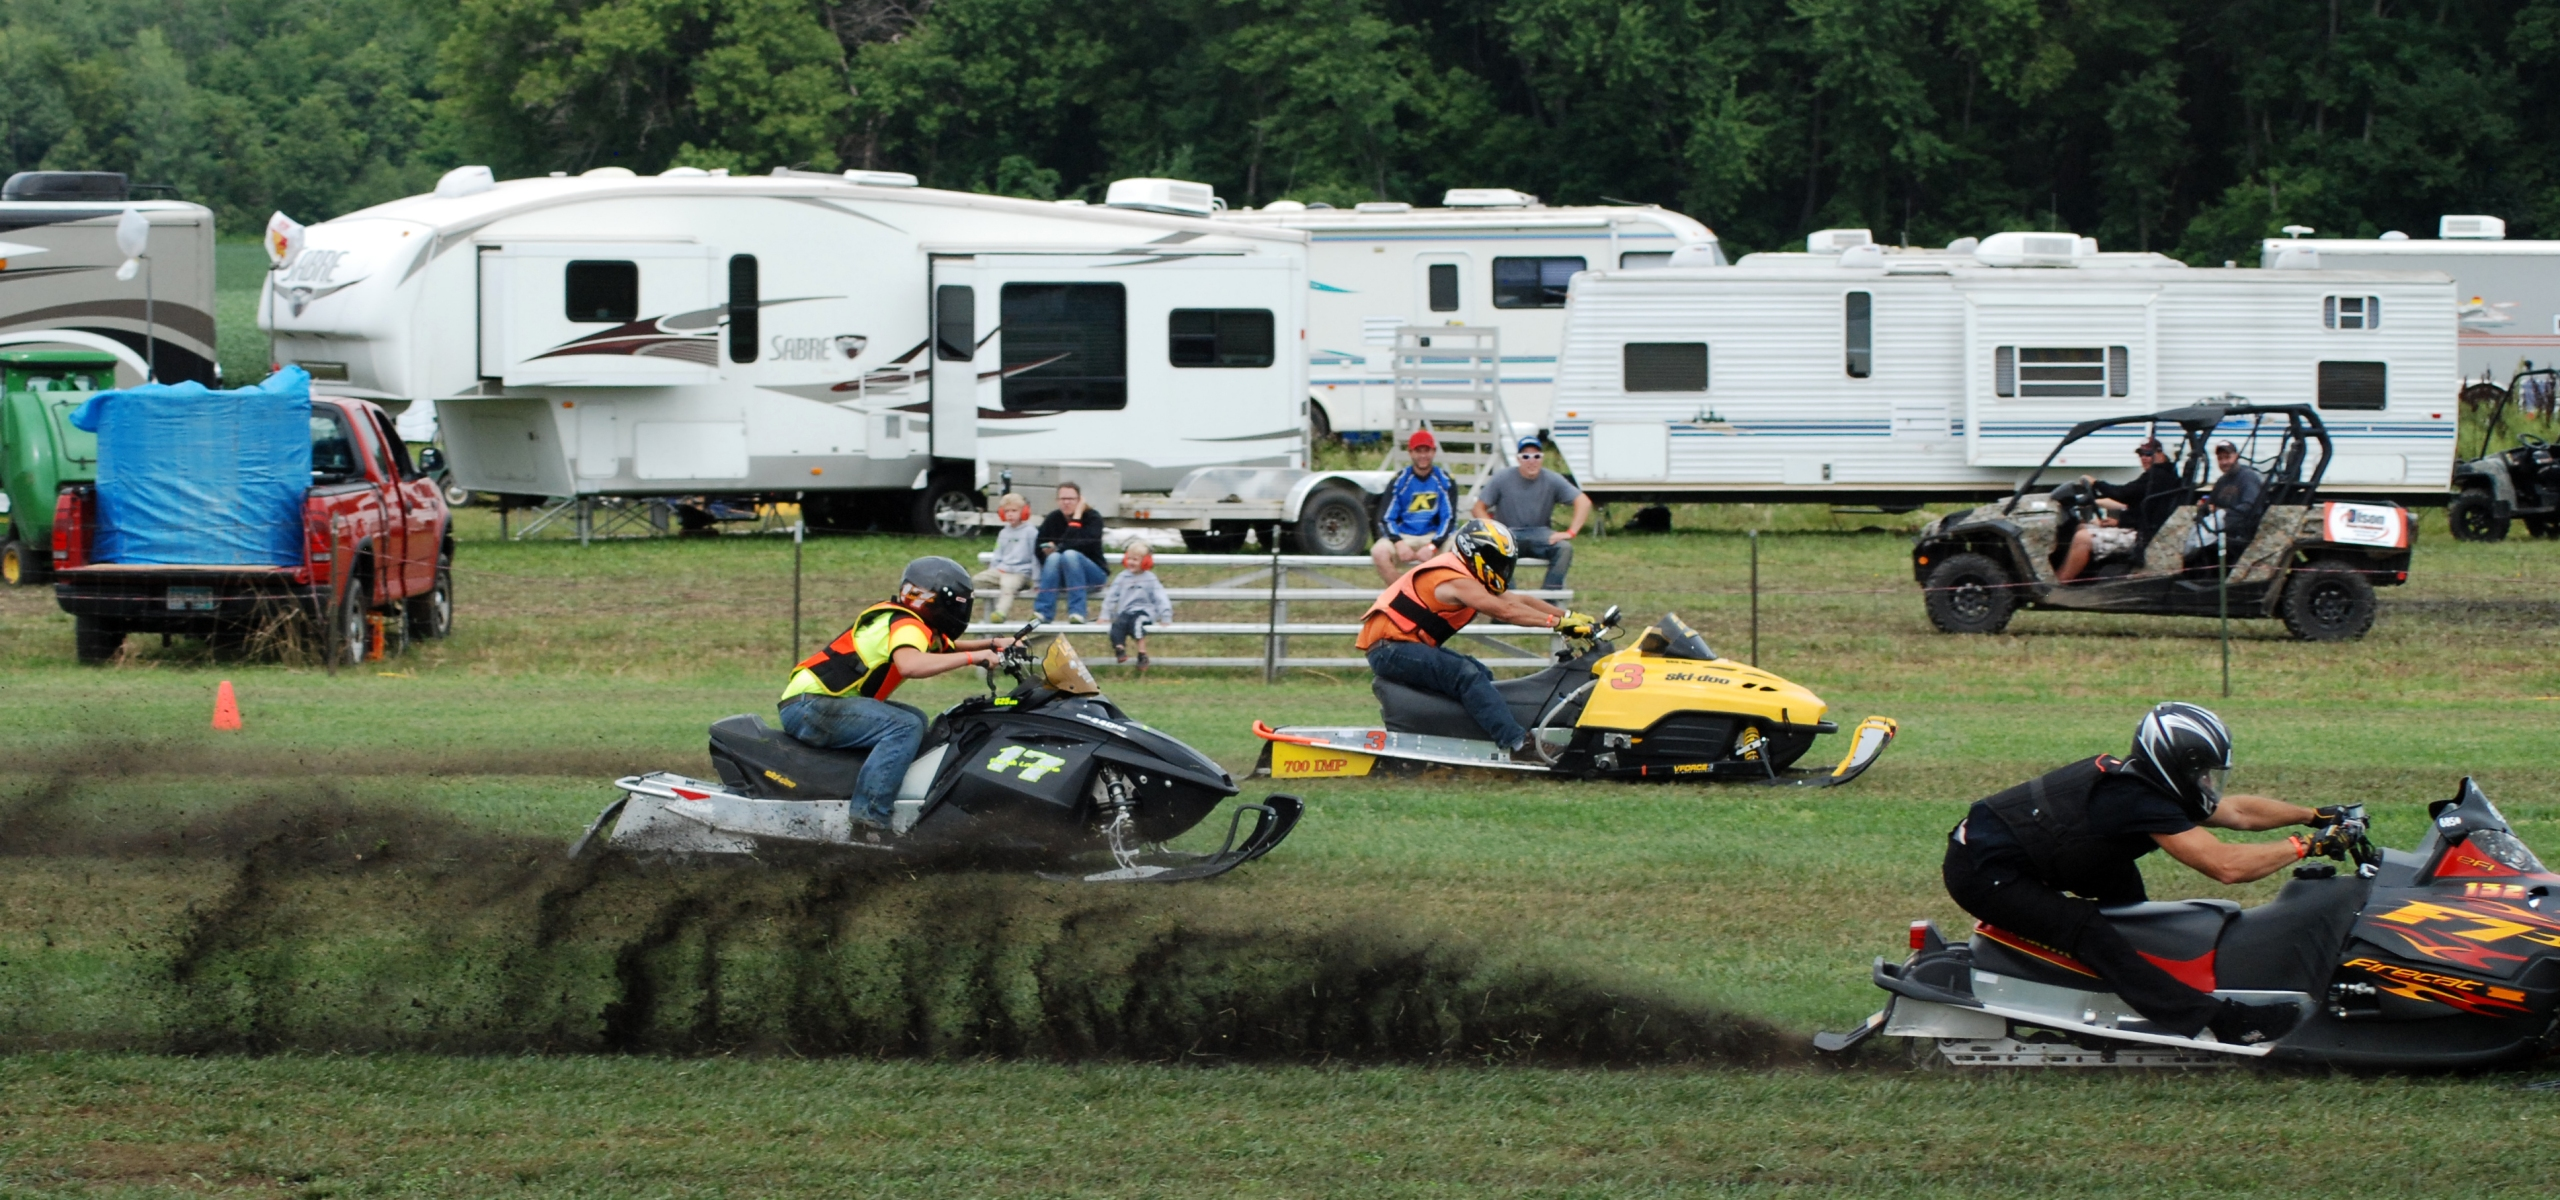 Snowmobile Grass Drags | Shore Looks Nice